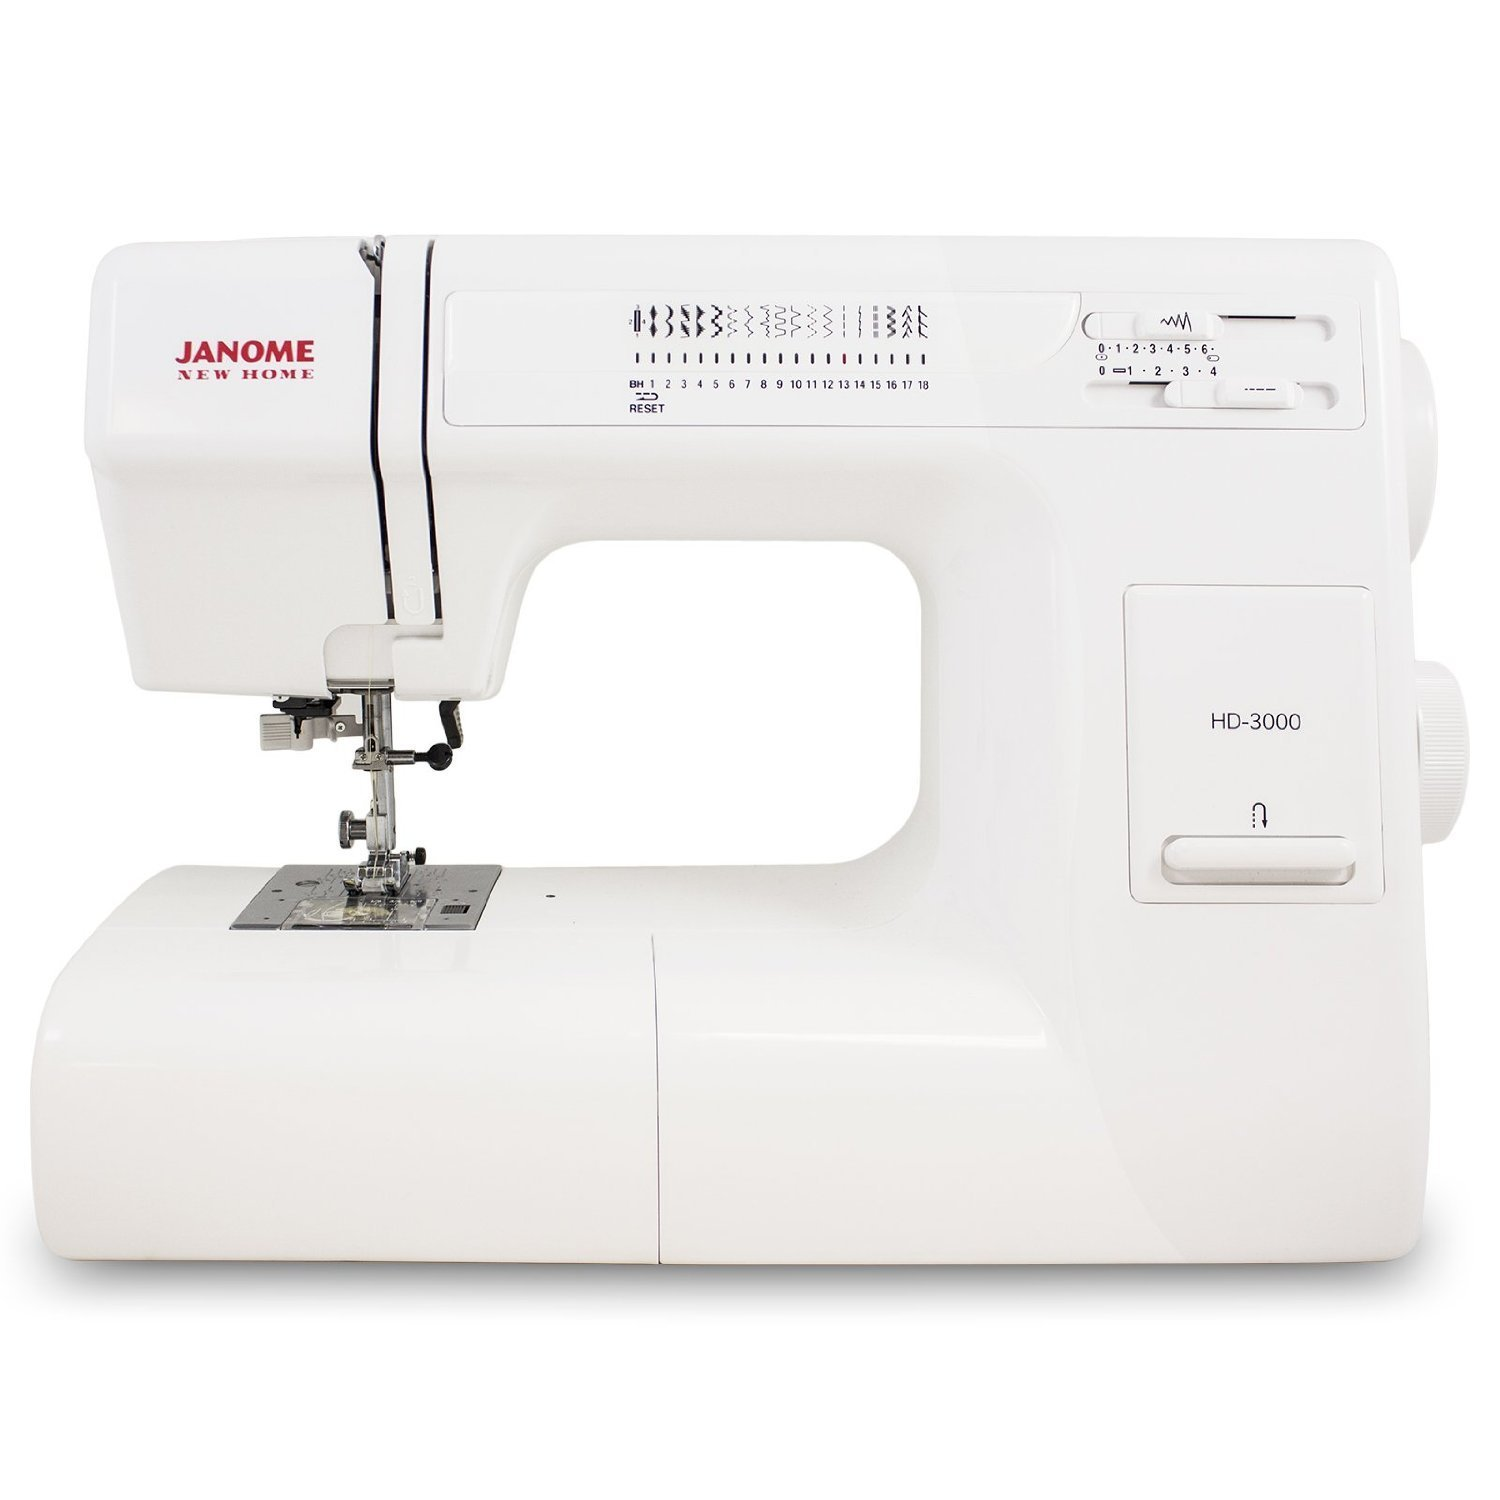 Janome Heavy-Duty Sewing Machine